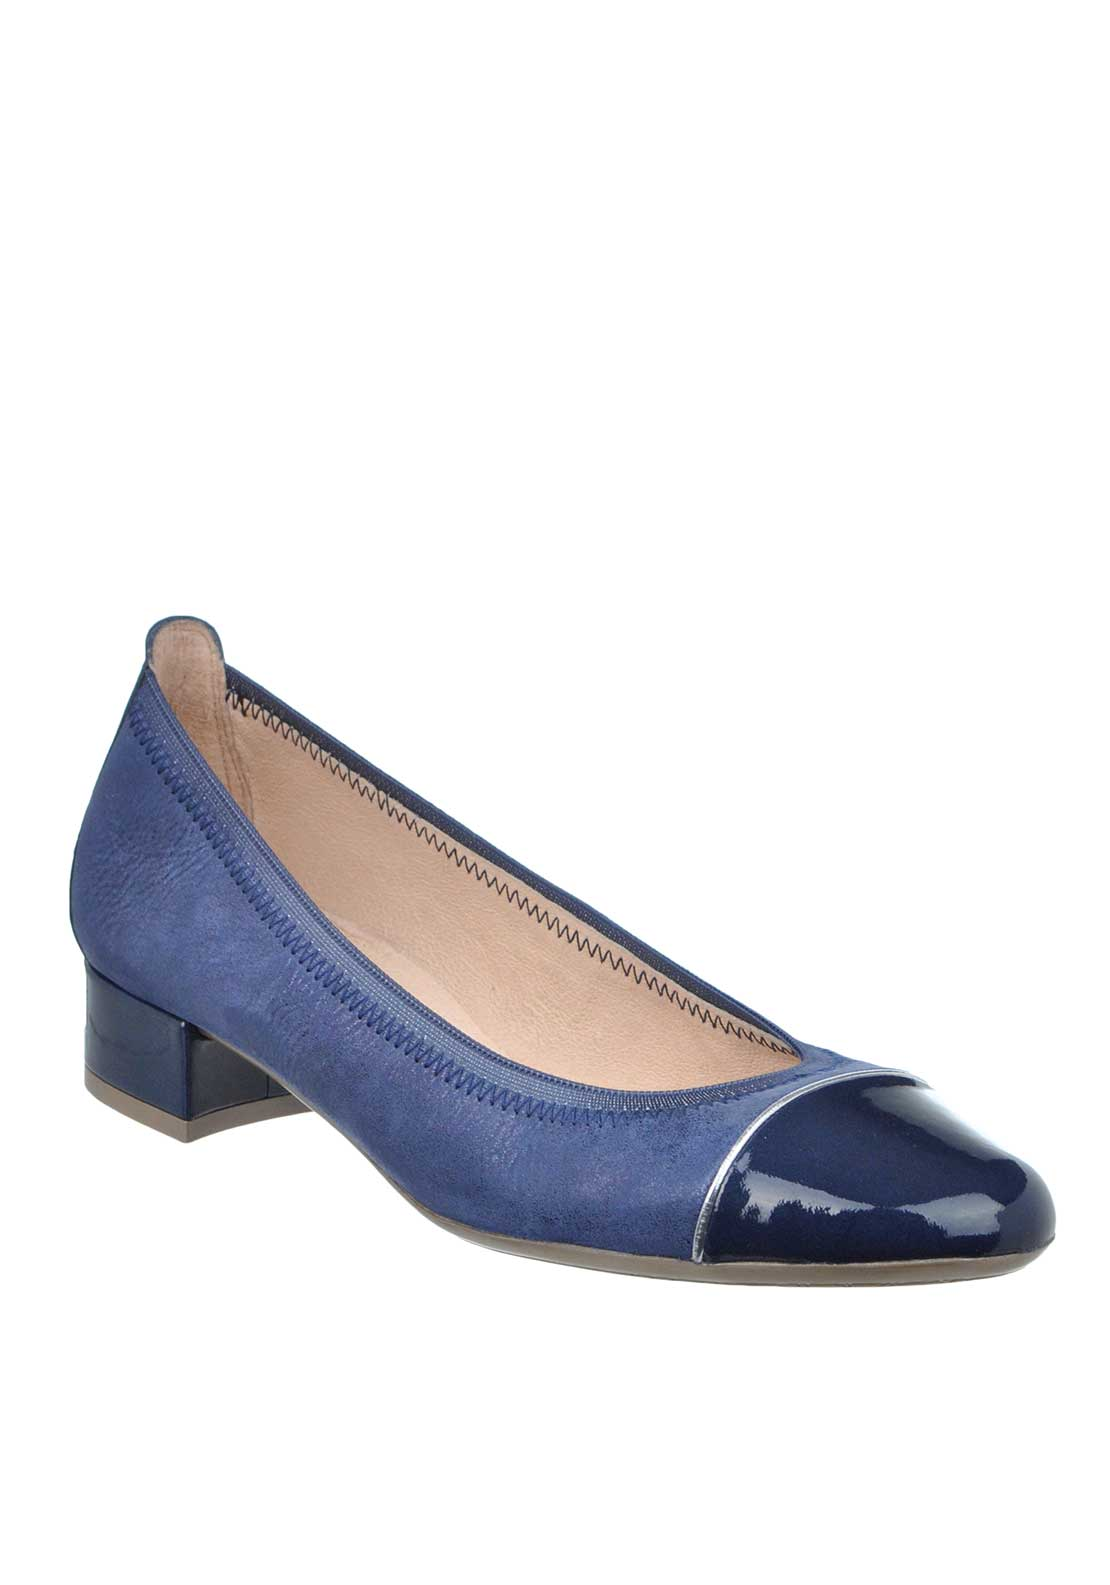 Hispanitas Shimmering Leather Heeled Pumps, Jeans